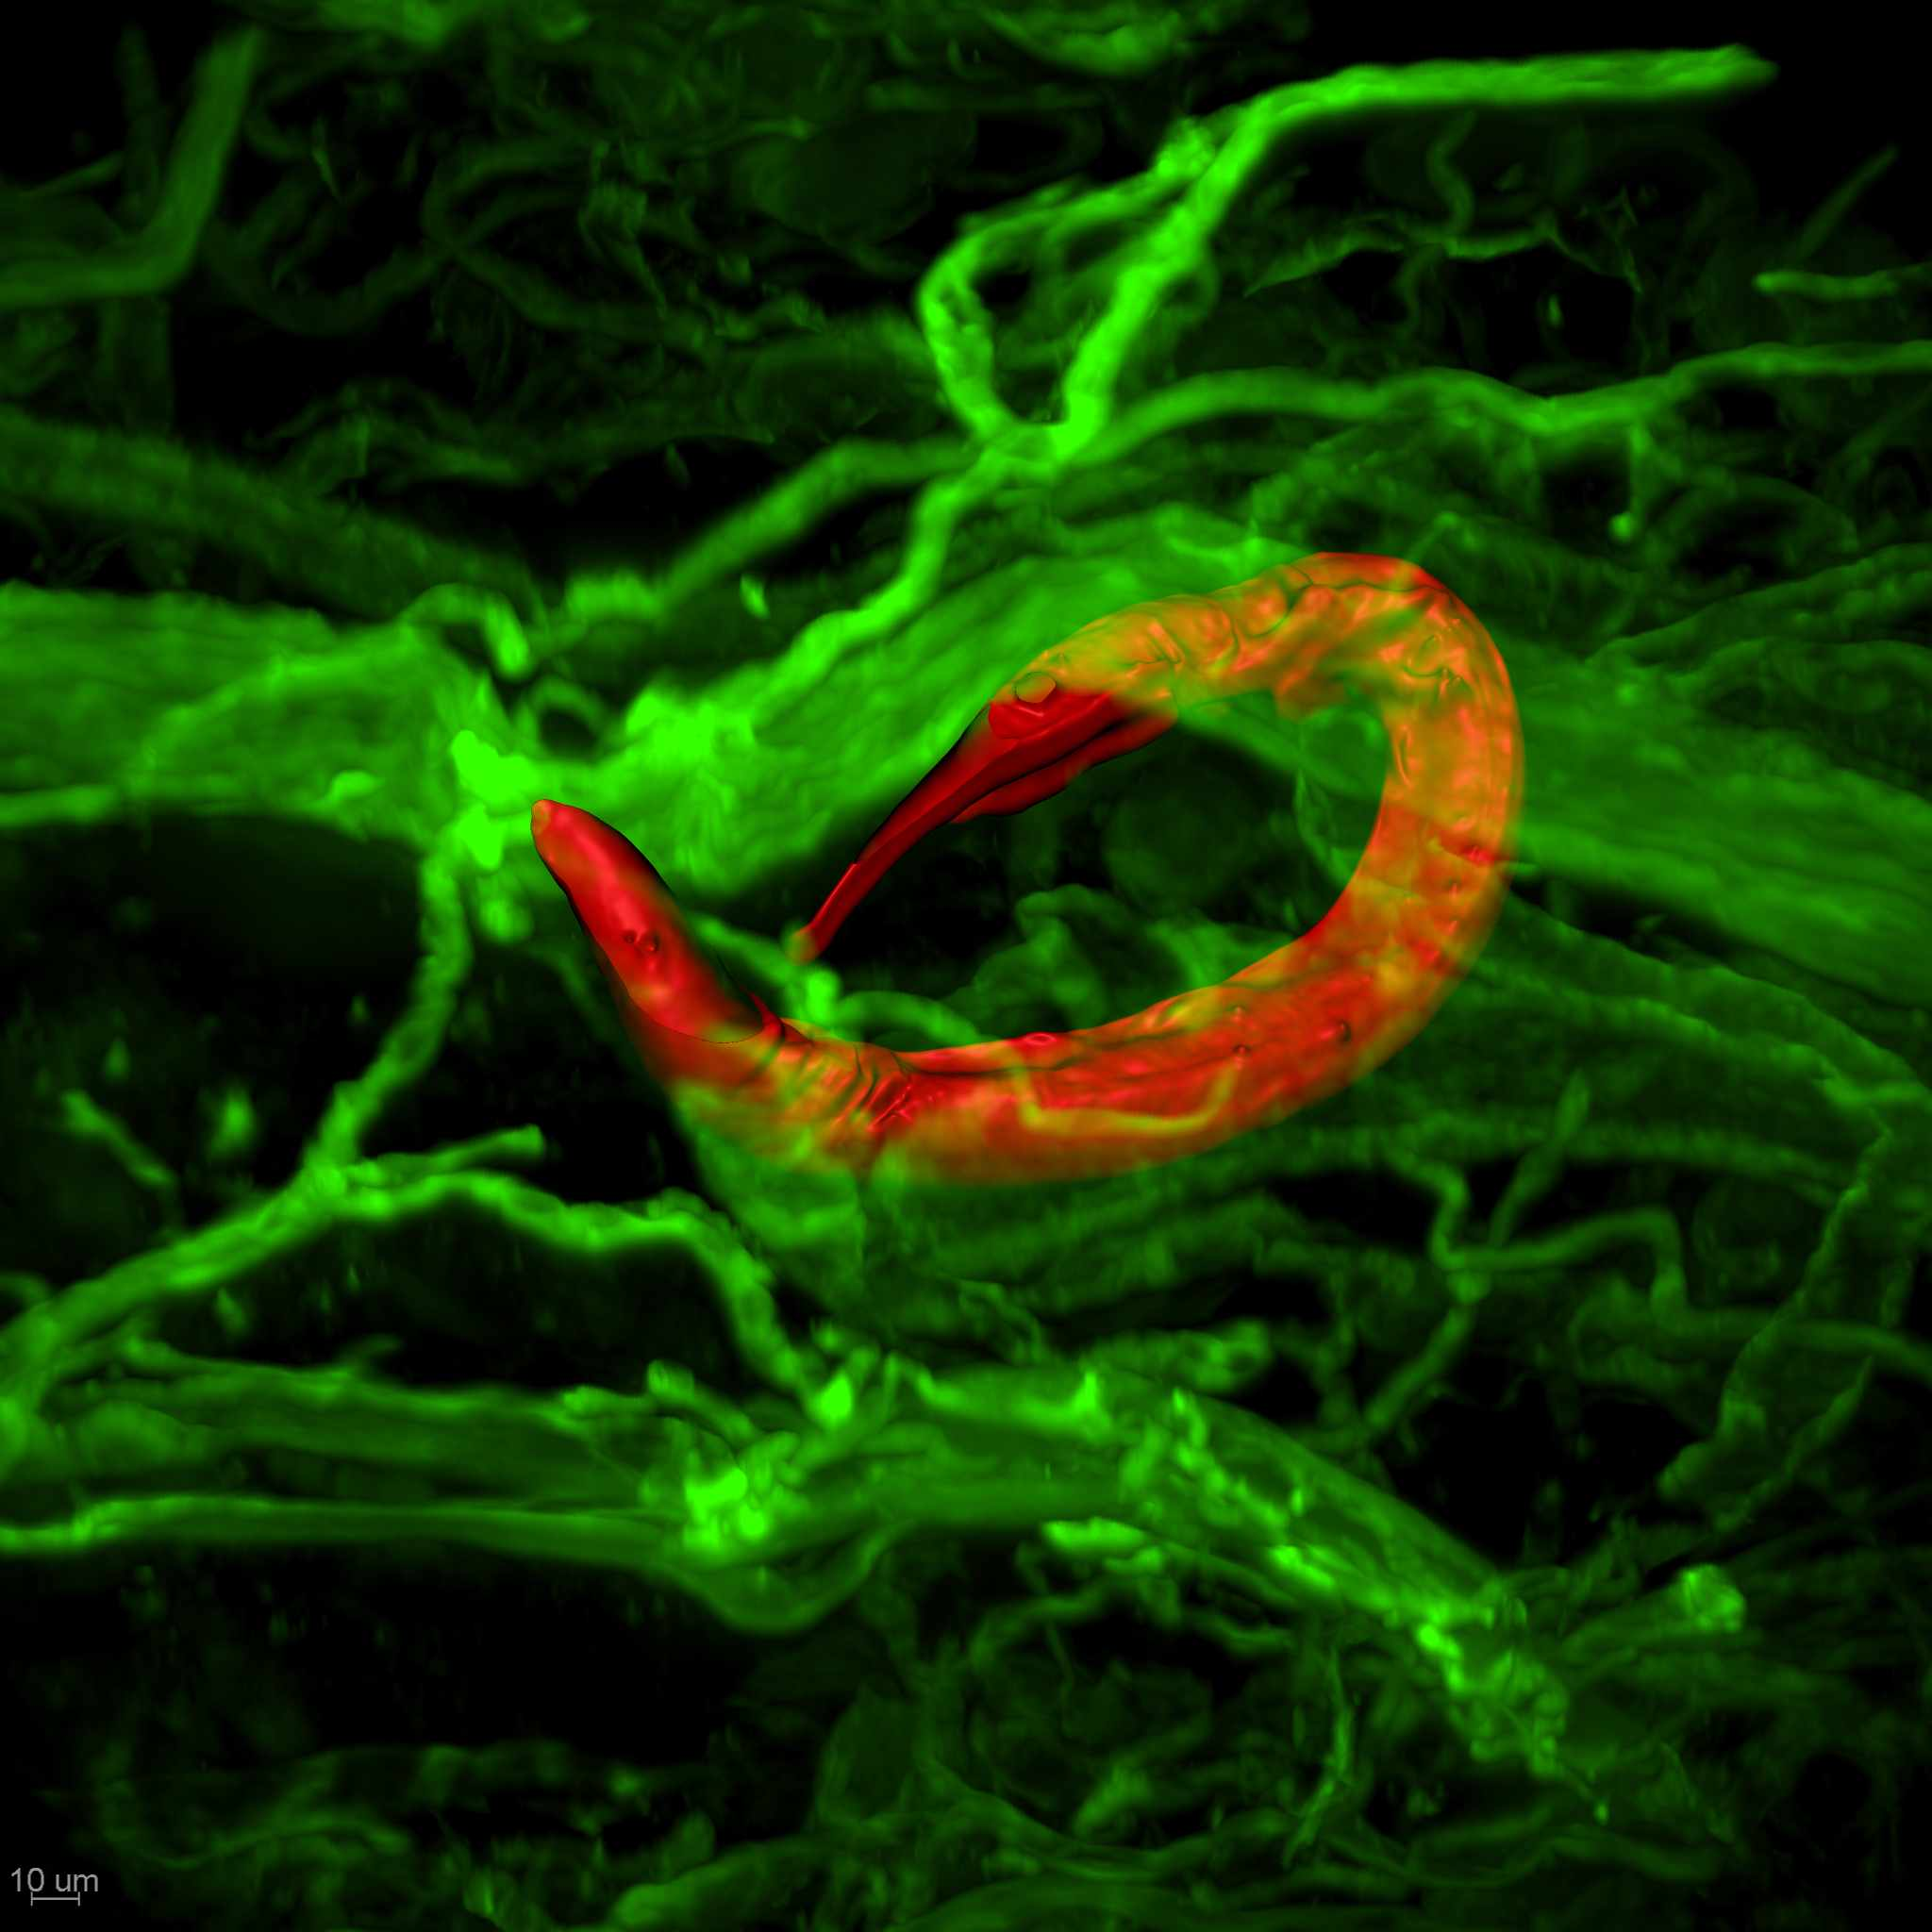 Figure 1. Bacterivorous soil-derived (non-parasitic) nematode (red) wrapped around a nerve in the mouse skin. Nerves, blood vessels, and lymphatics of the skin are stained green.